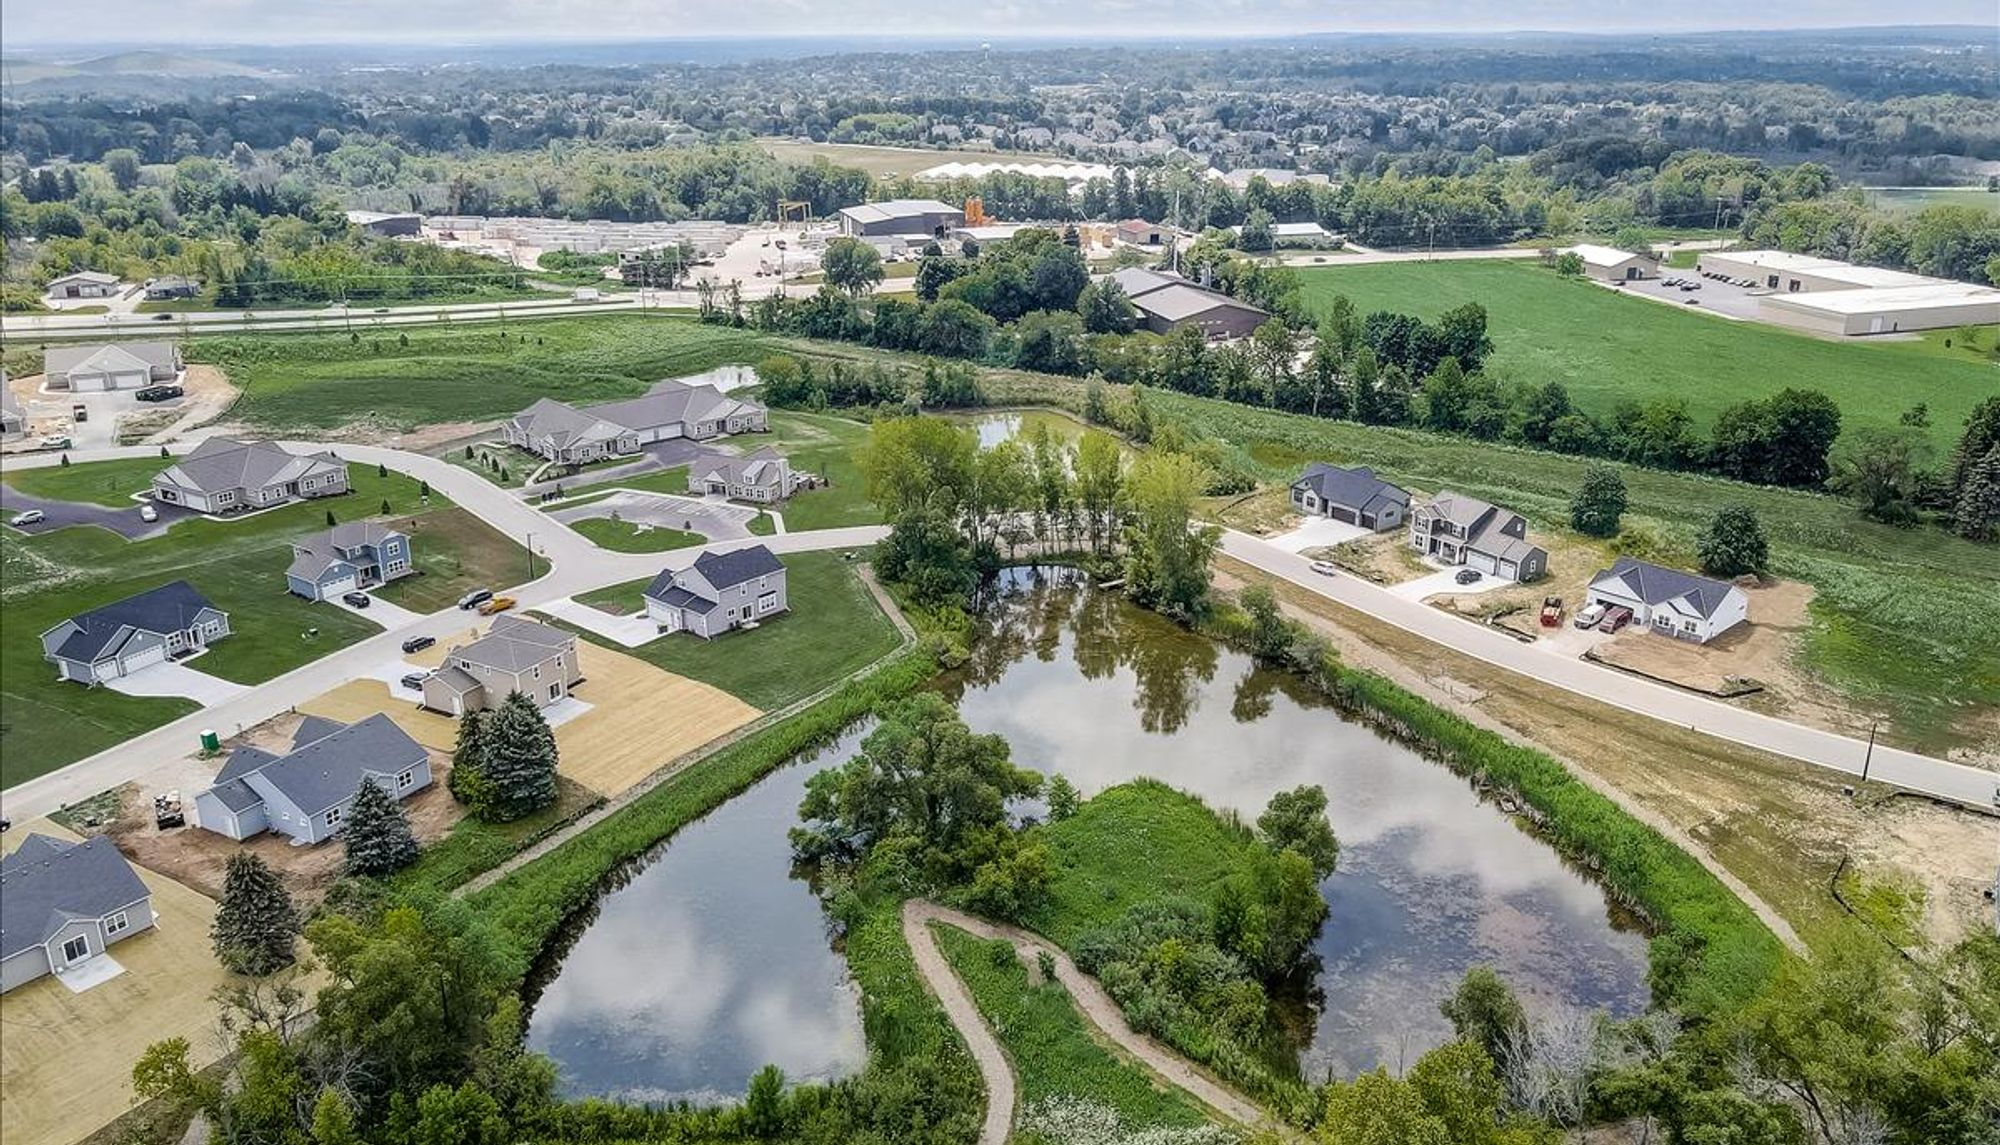 Aerial view of the new home community in Germantown WI, Wrenwood